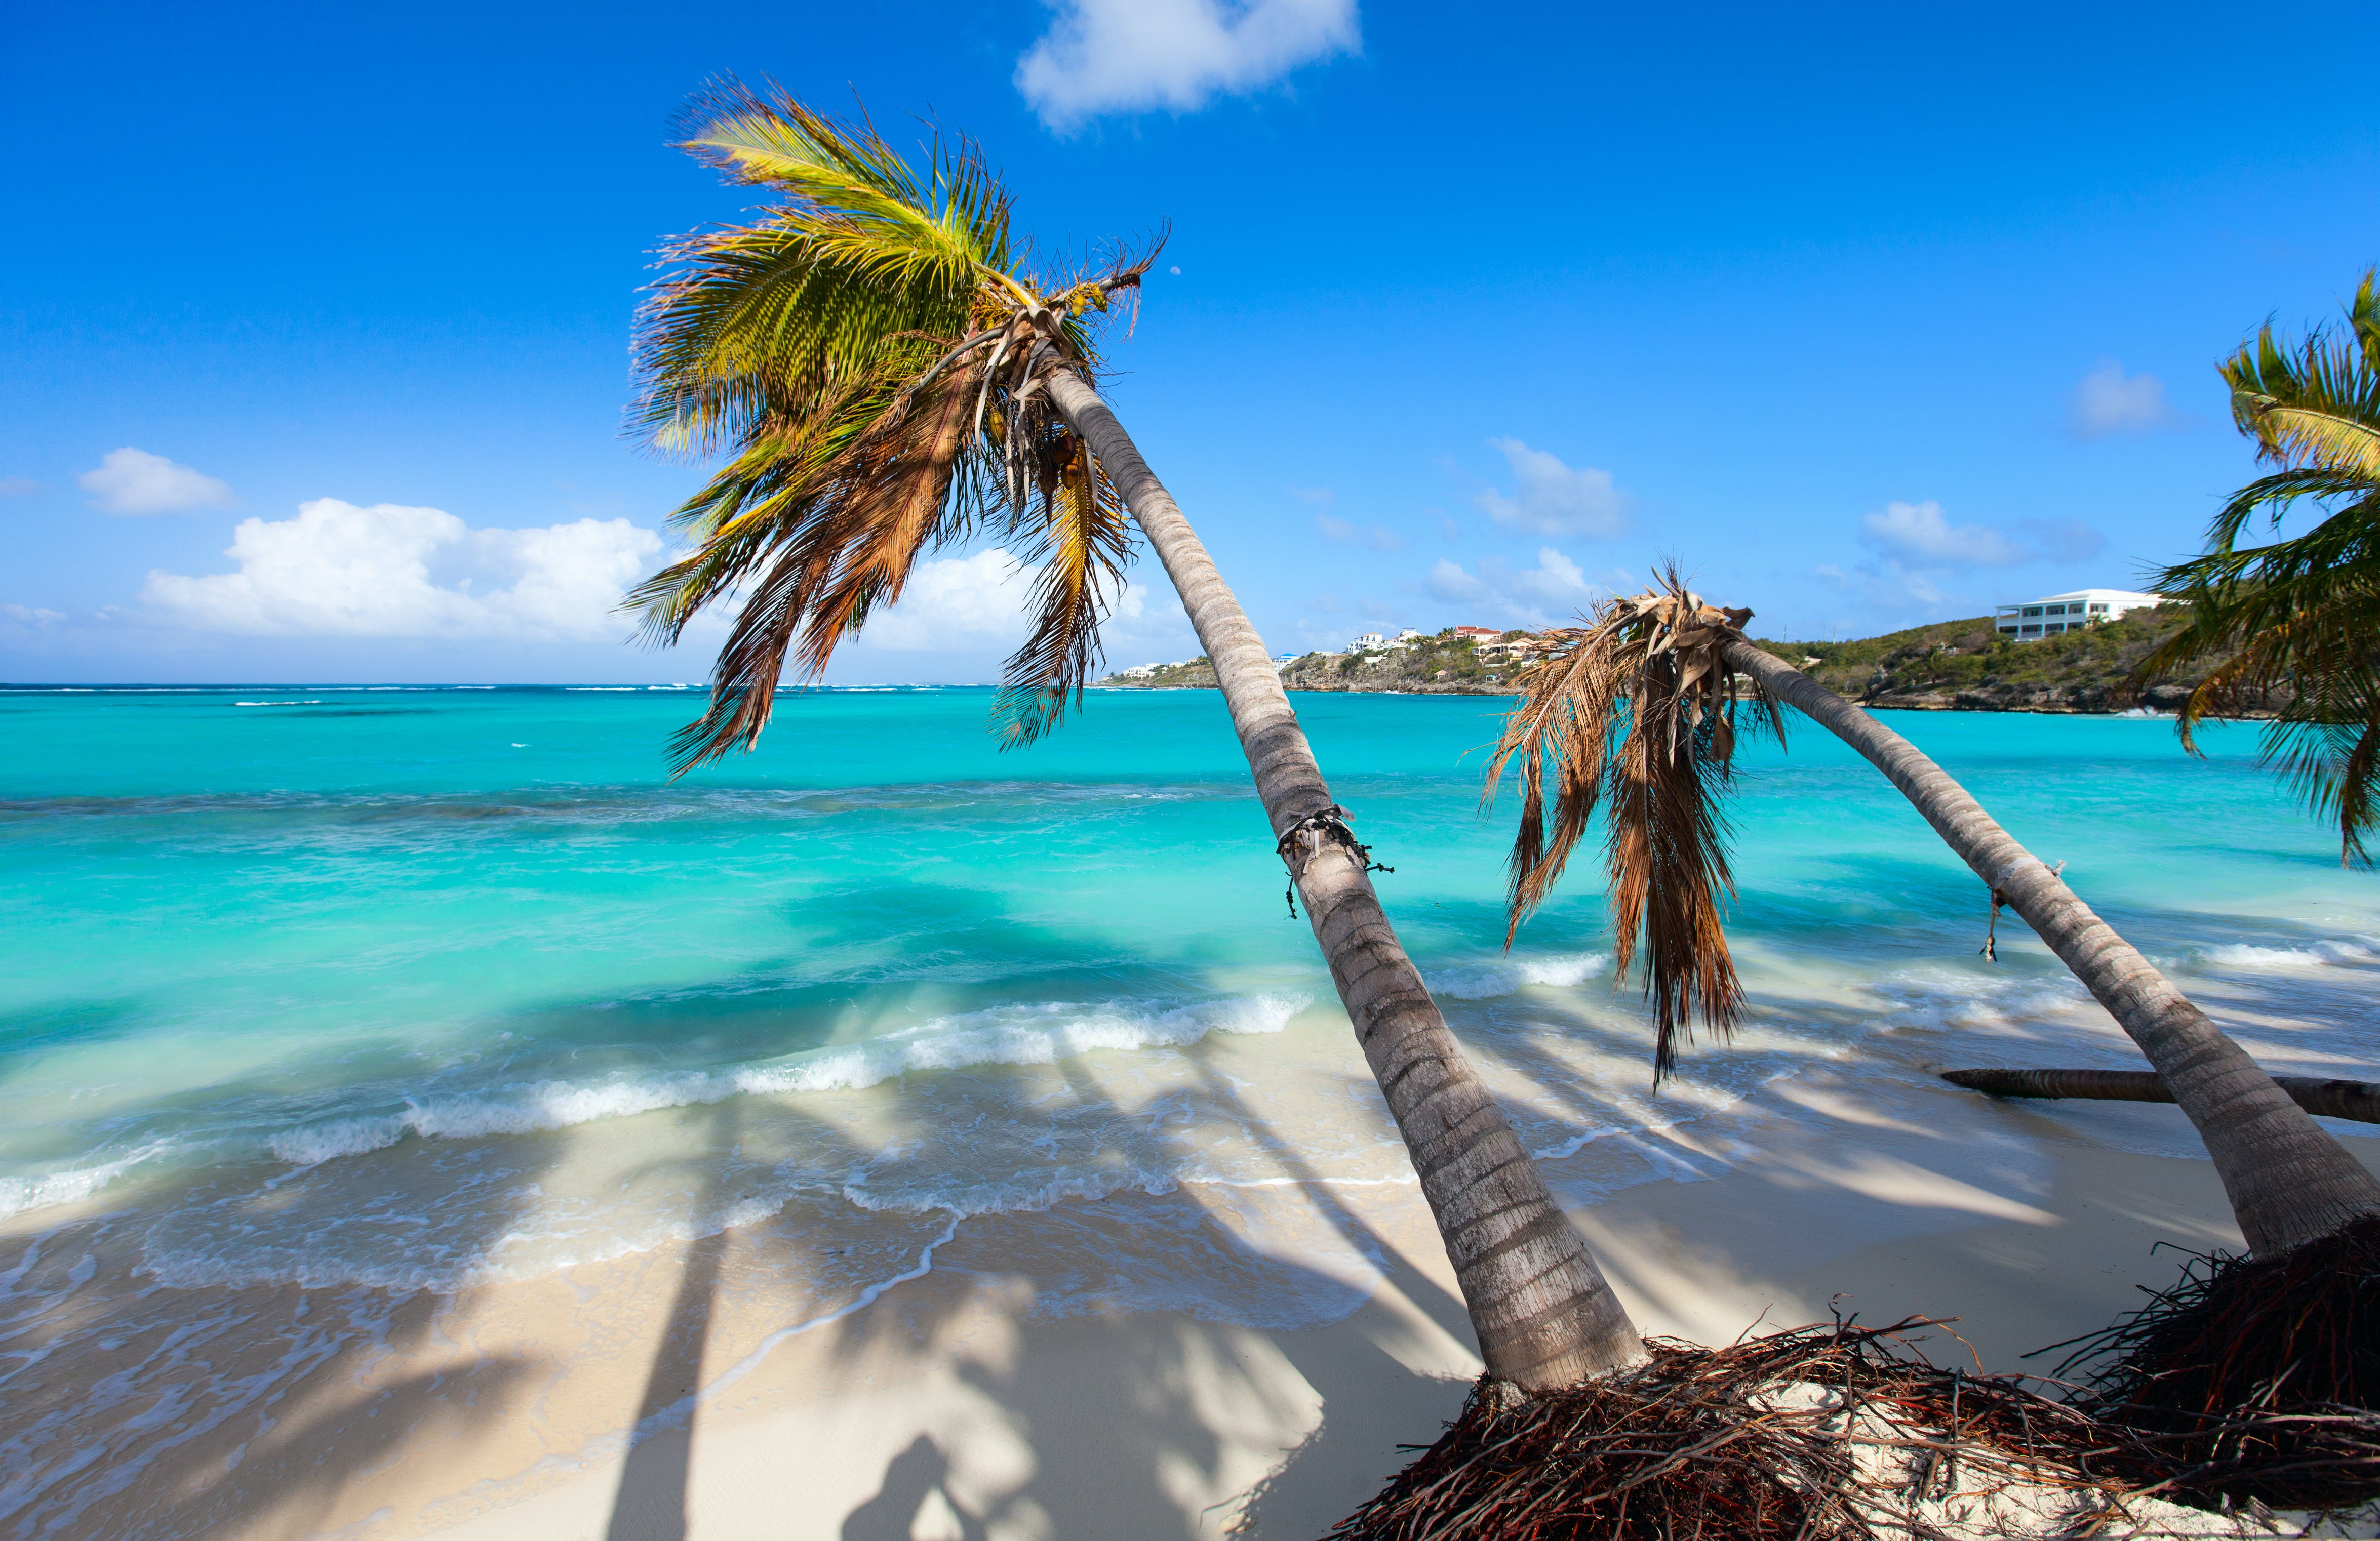 Sun, sand, and sea await on the unspoiled Caribbean island gem of Anguilla.